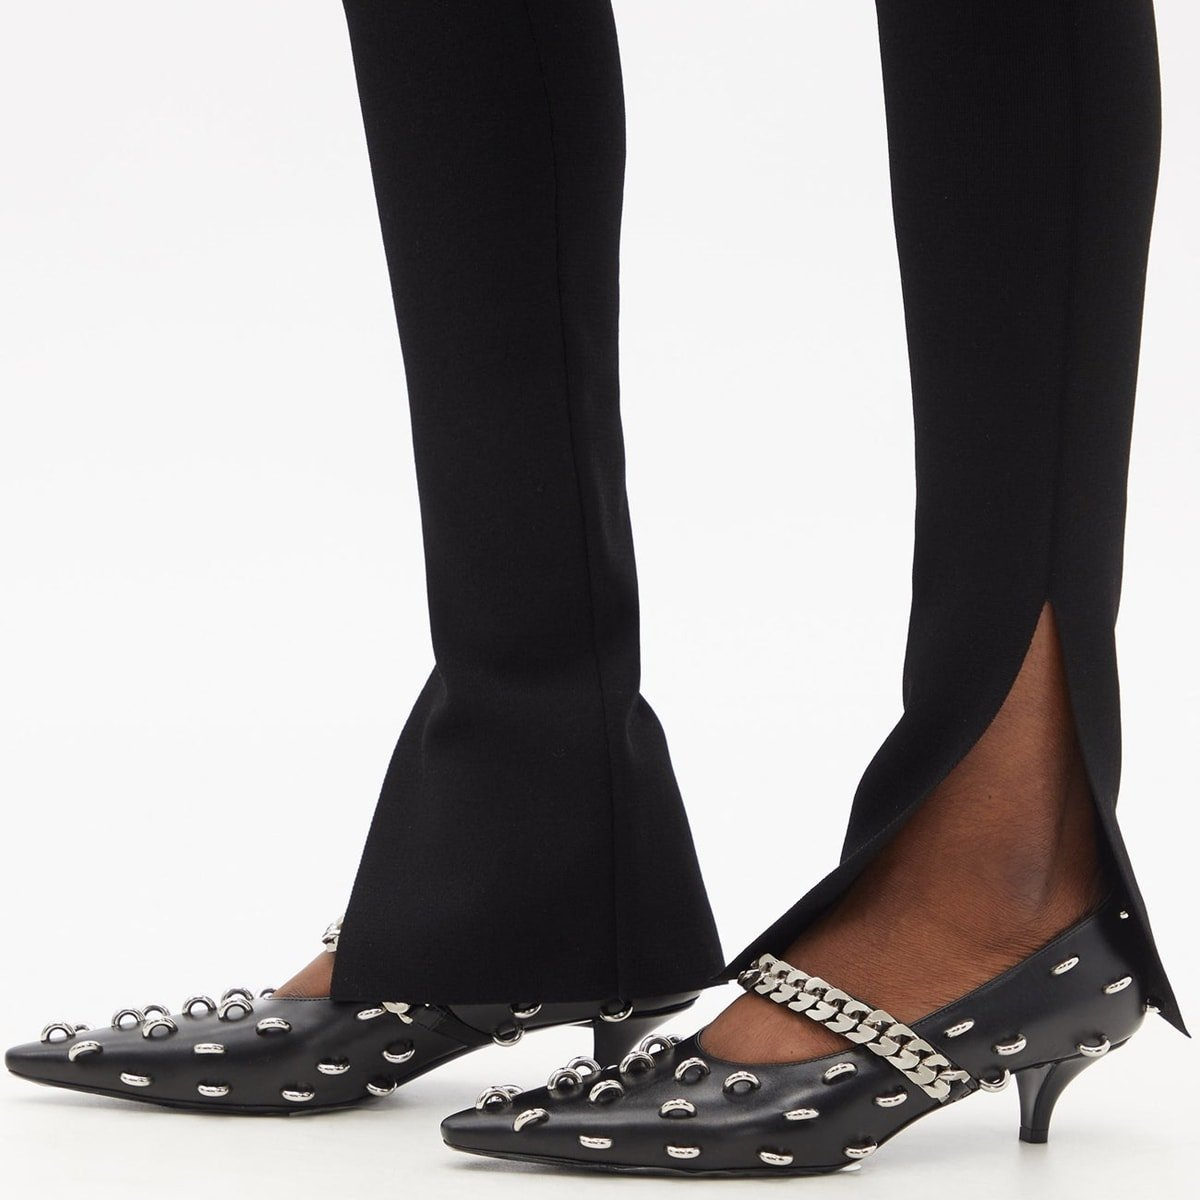 Black kitten heel pumps from Givenchy's Matthew M. Williams embellished with studded rings across the upper